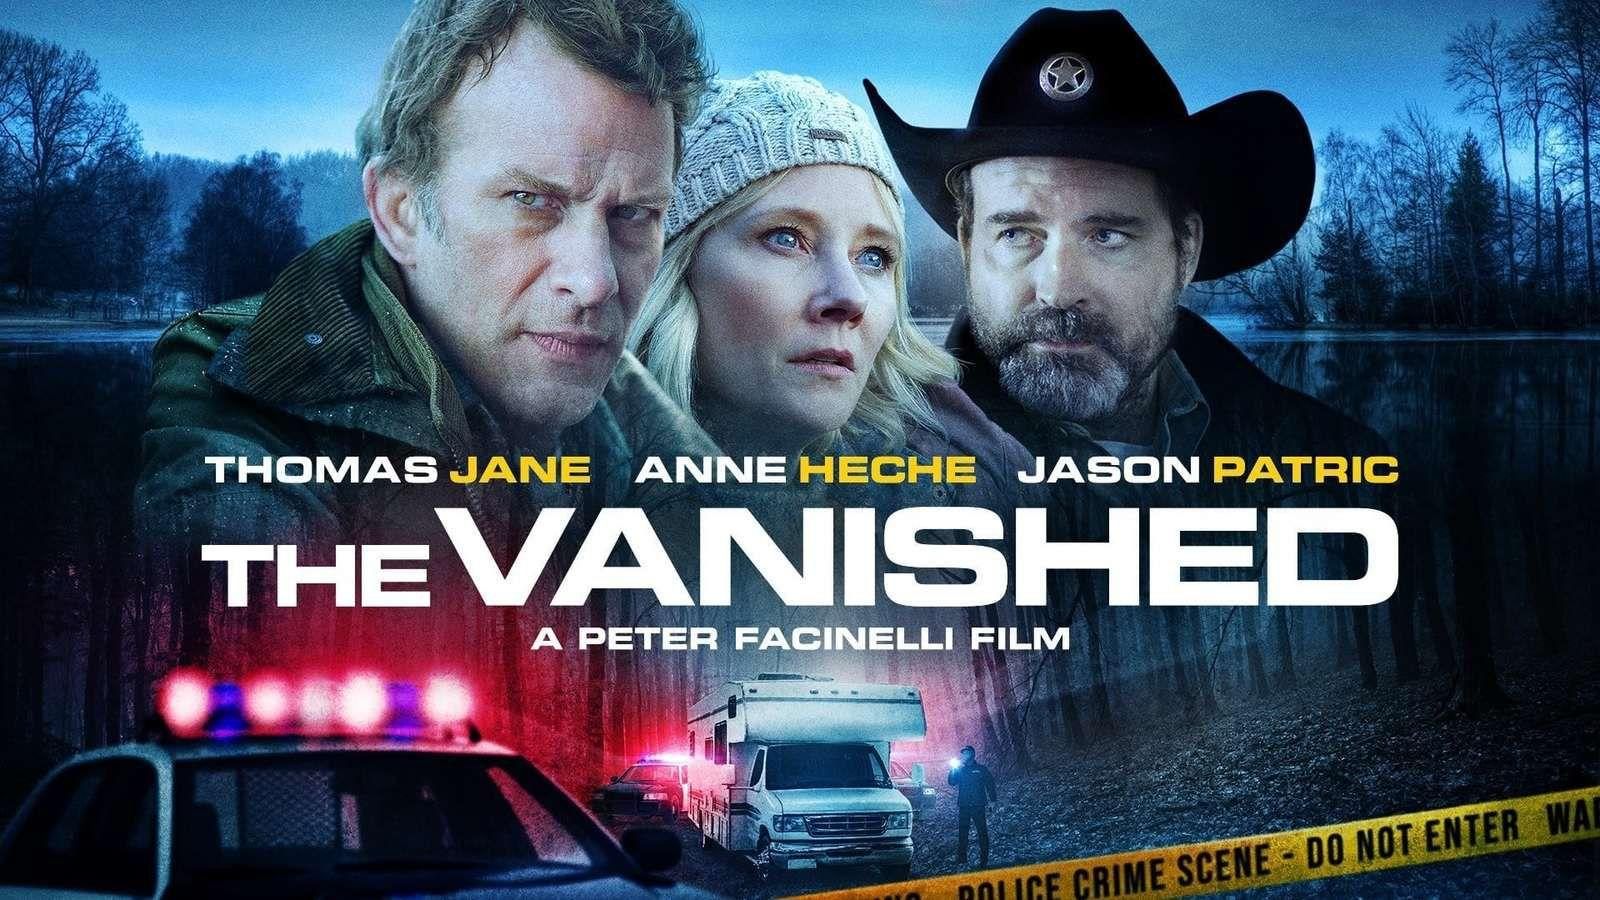 مشاهدة فيلم The Vanished (2020) مترجم HD اون لاين